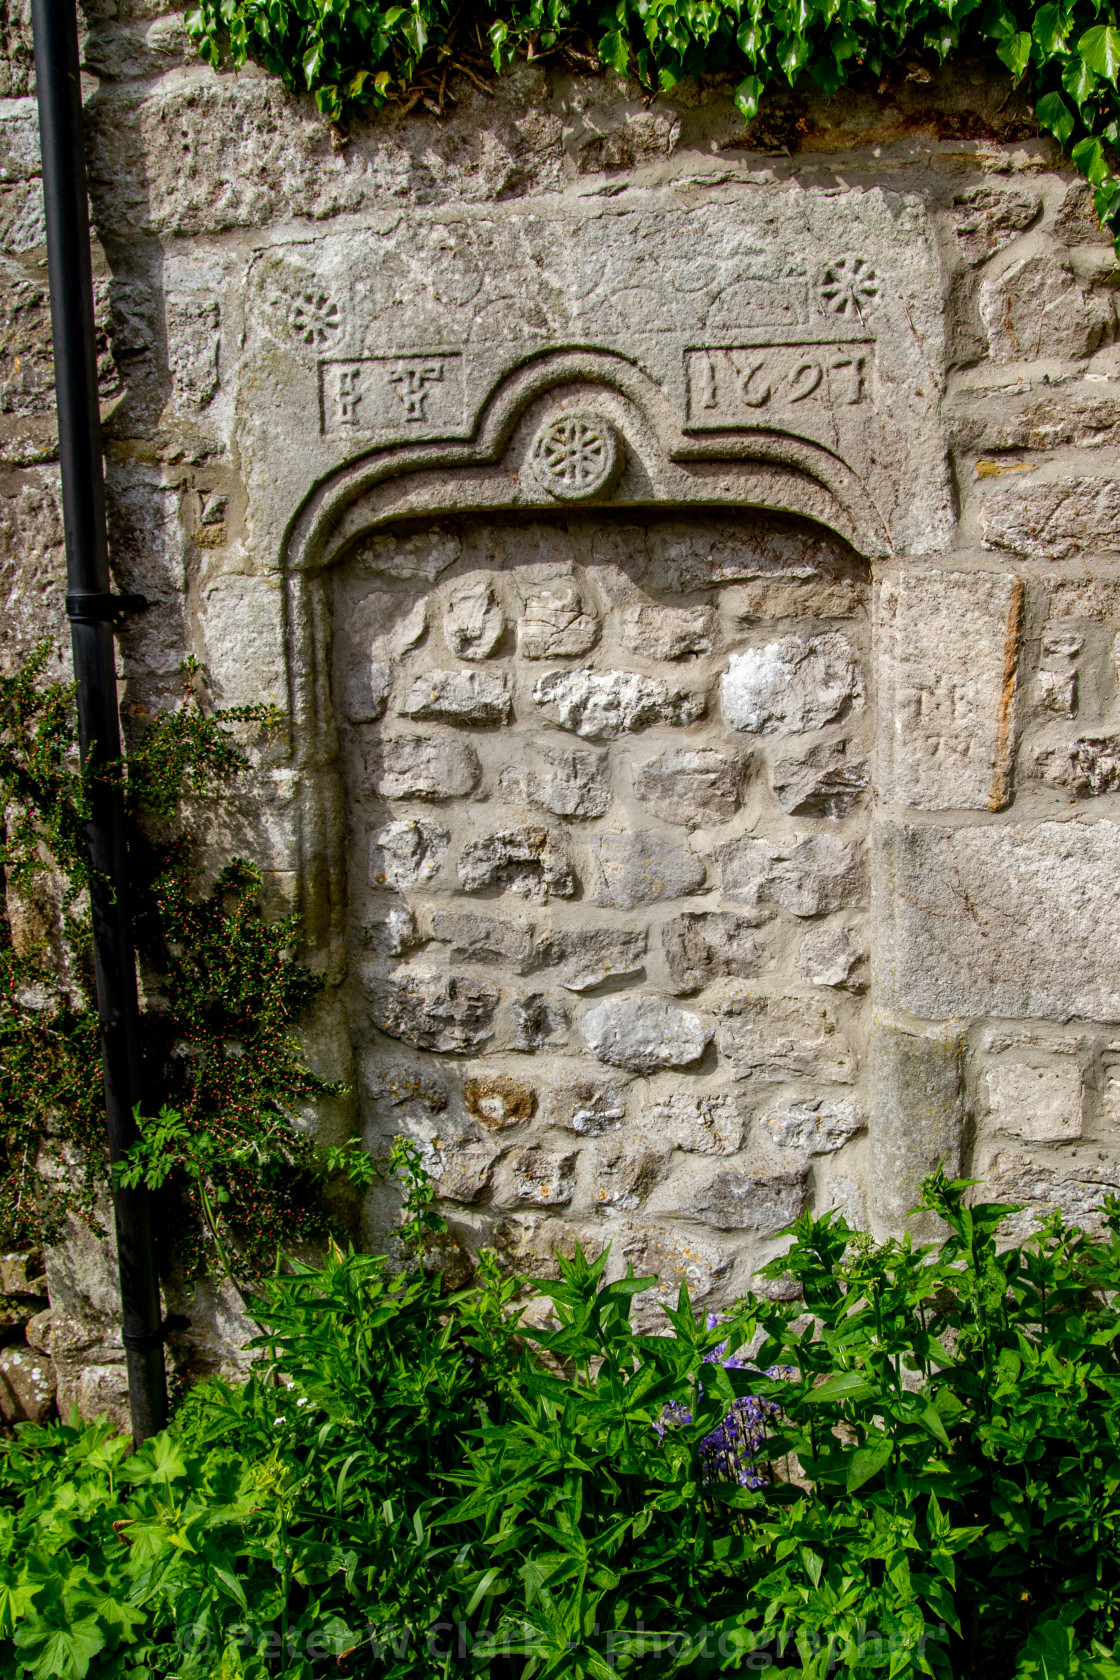 """""""Old Datestone 1607 over blocked entrance to building in Conistone"""" stock image"""